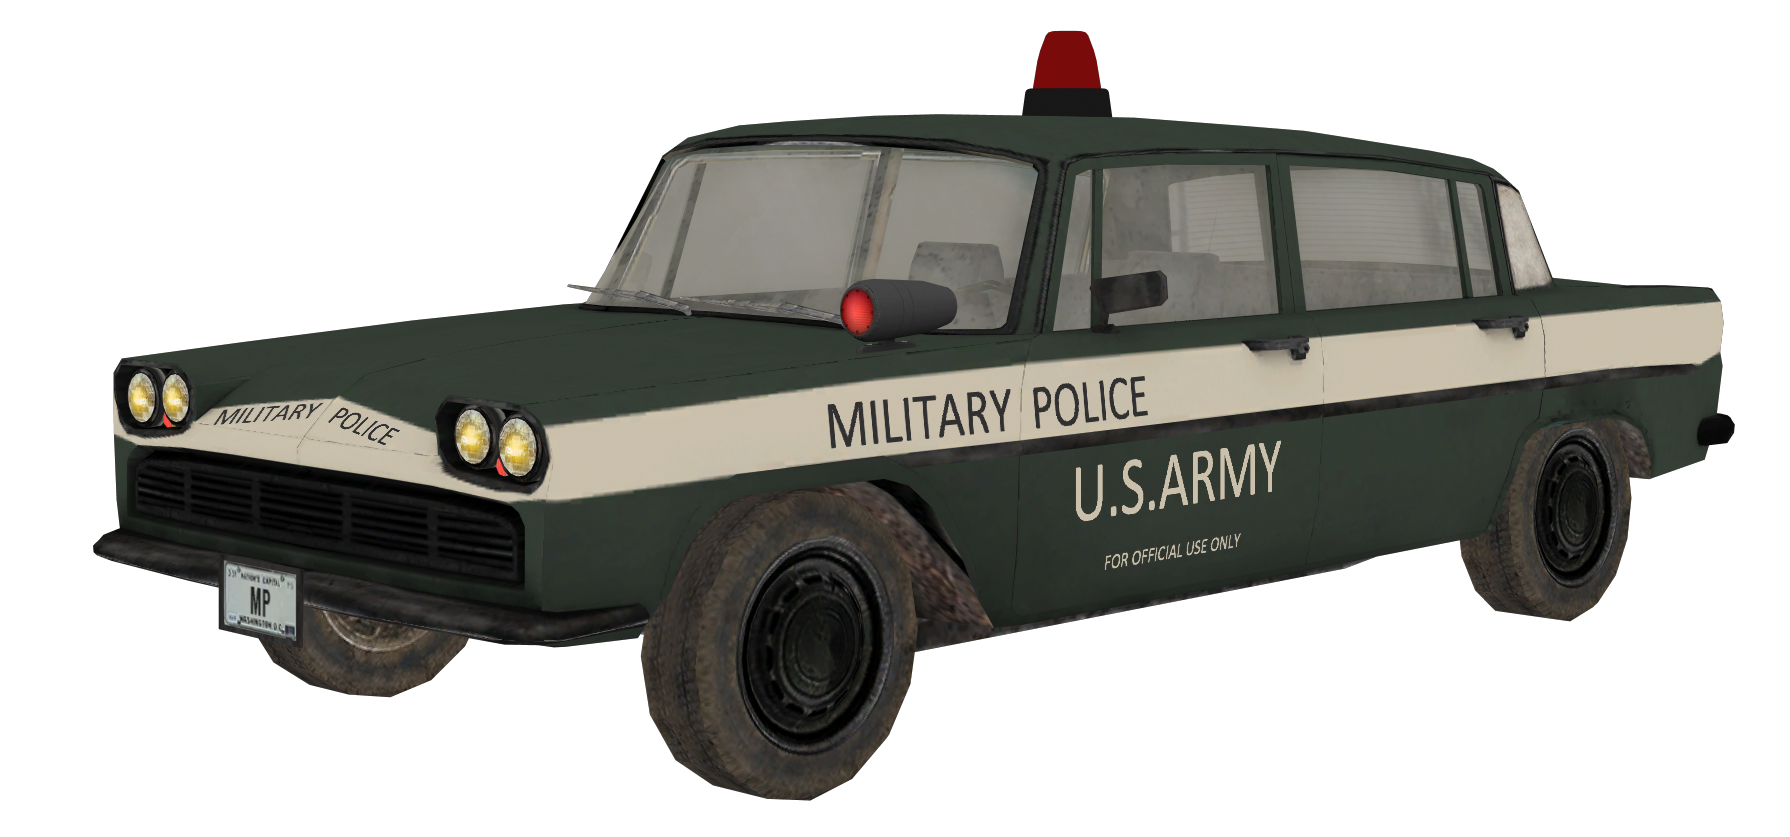 Image military car model. Clipart cars police